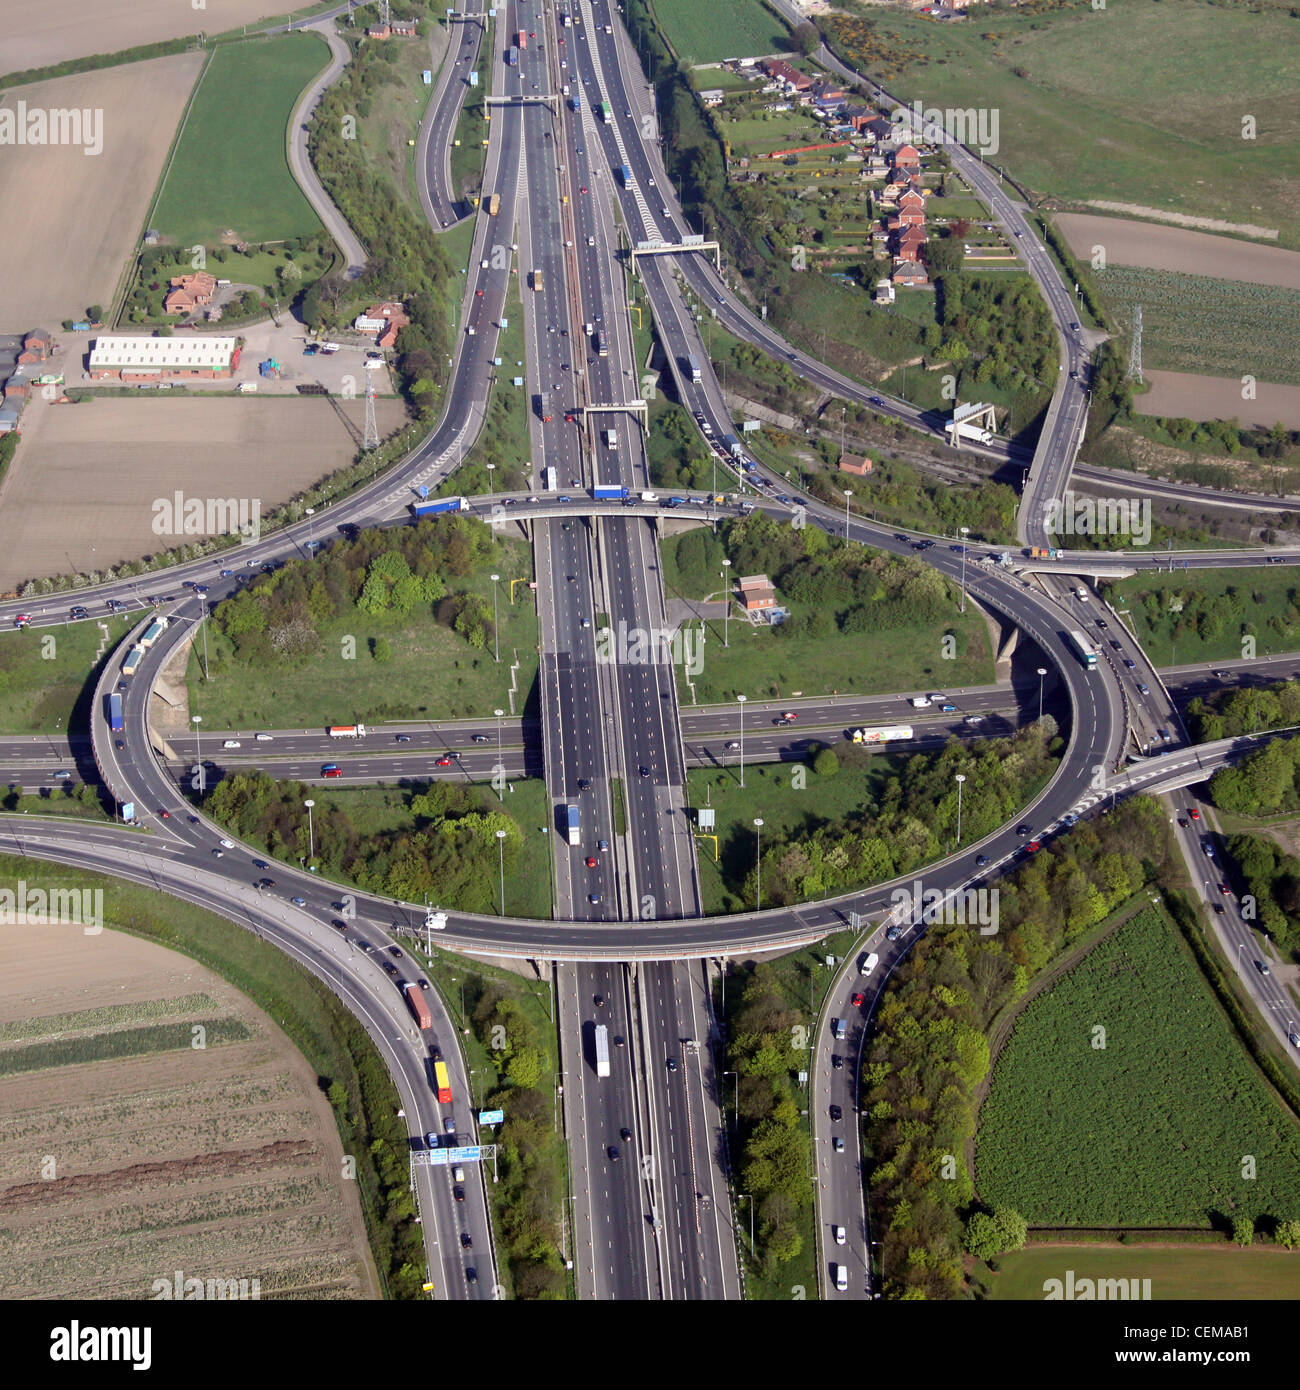 Aerial image of M1M62 motorway junction south of Leeds - Stock Image